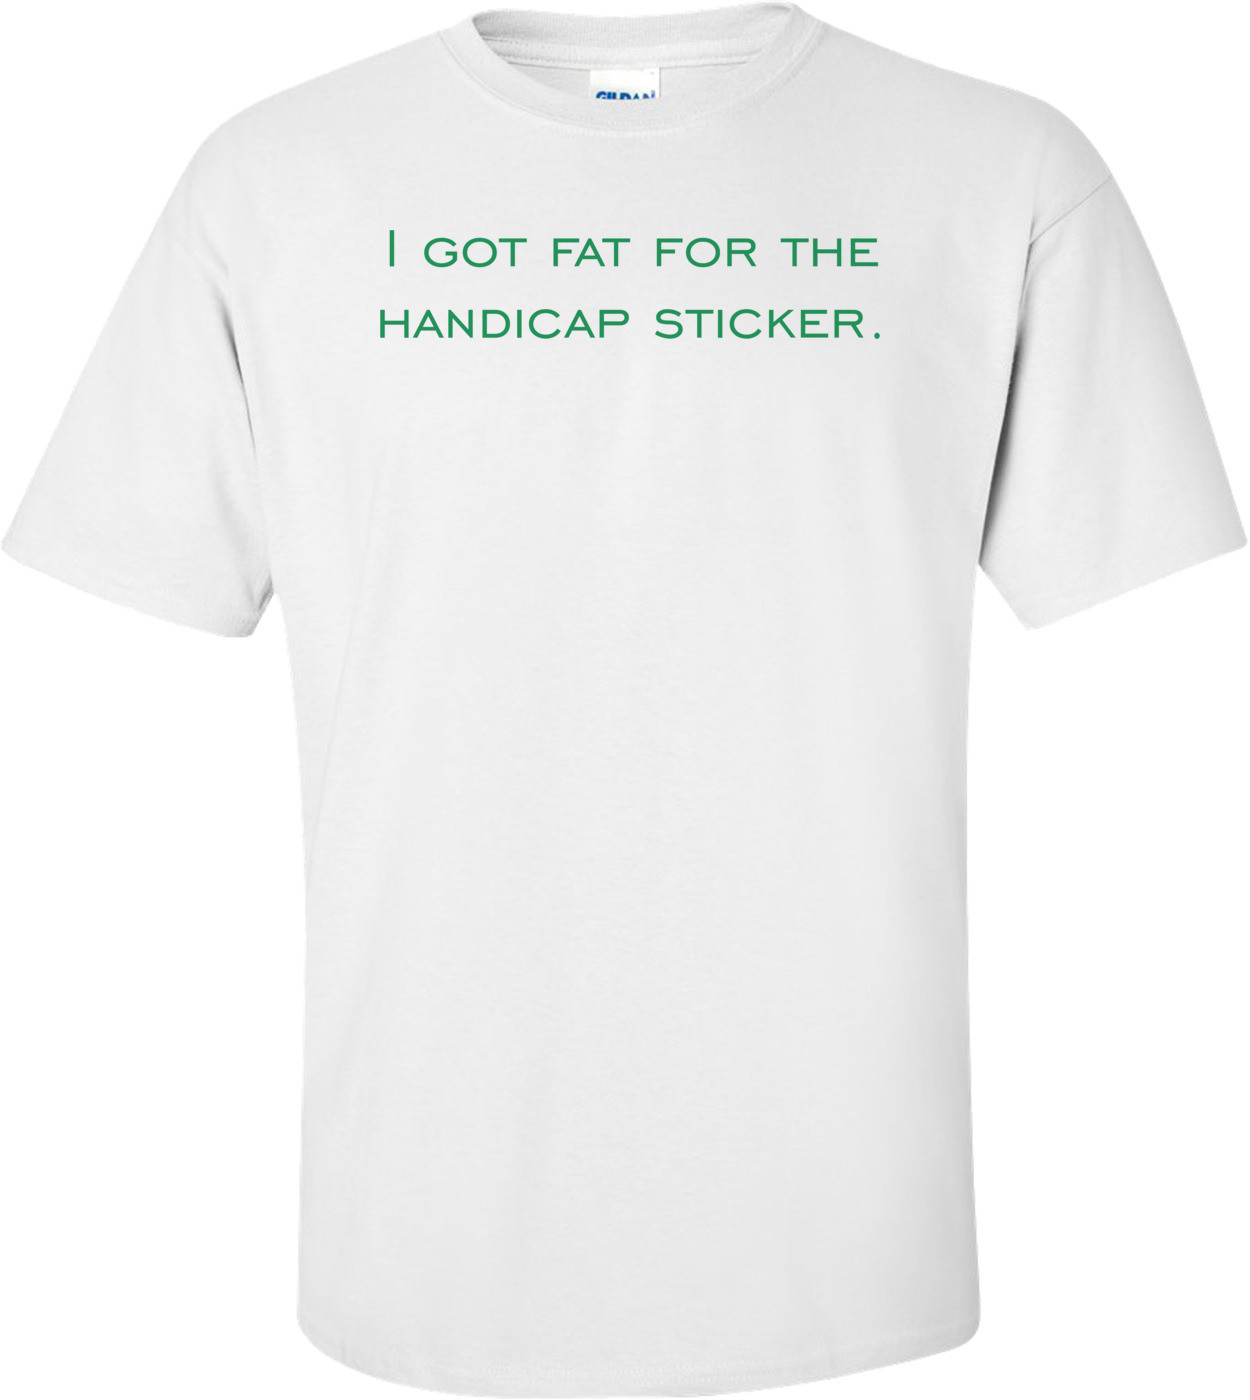 I got fat for the handicap sticker. Shirt